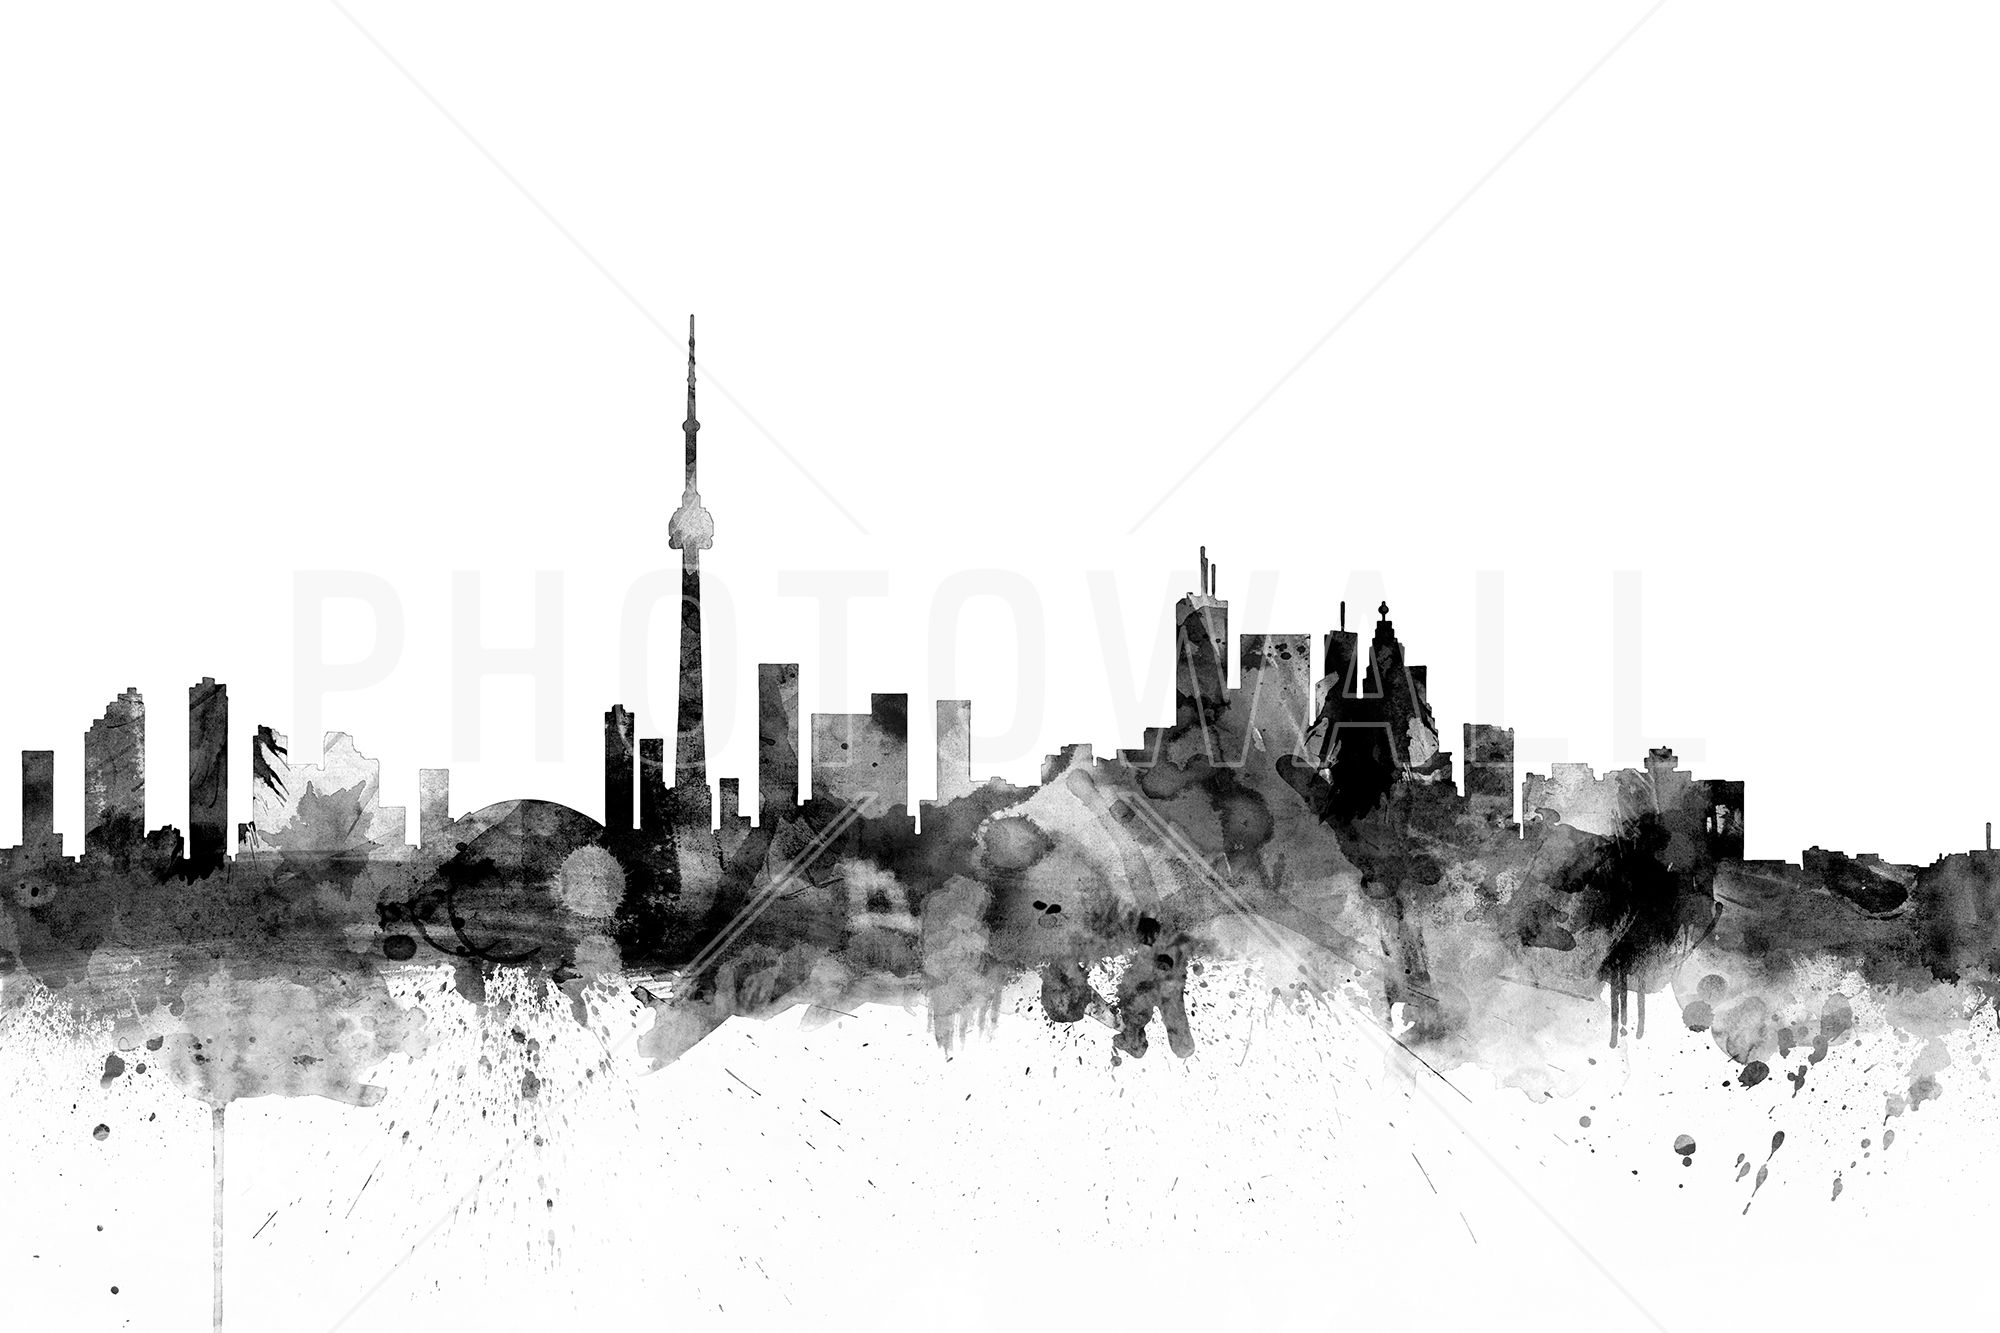 Toronto skyline black wall mural photo wallpaper photowall toronto skyline black wall mural photo wallpaper photowall amipublicfo Image collections